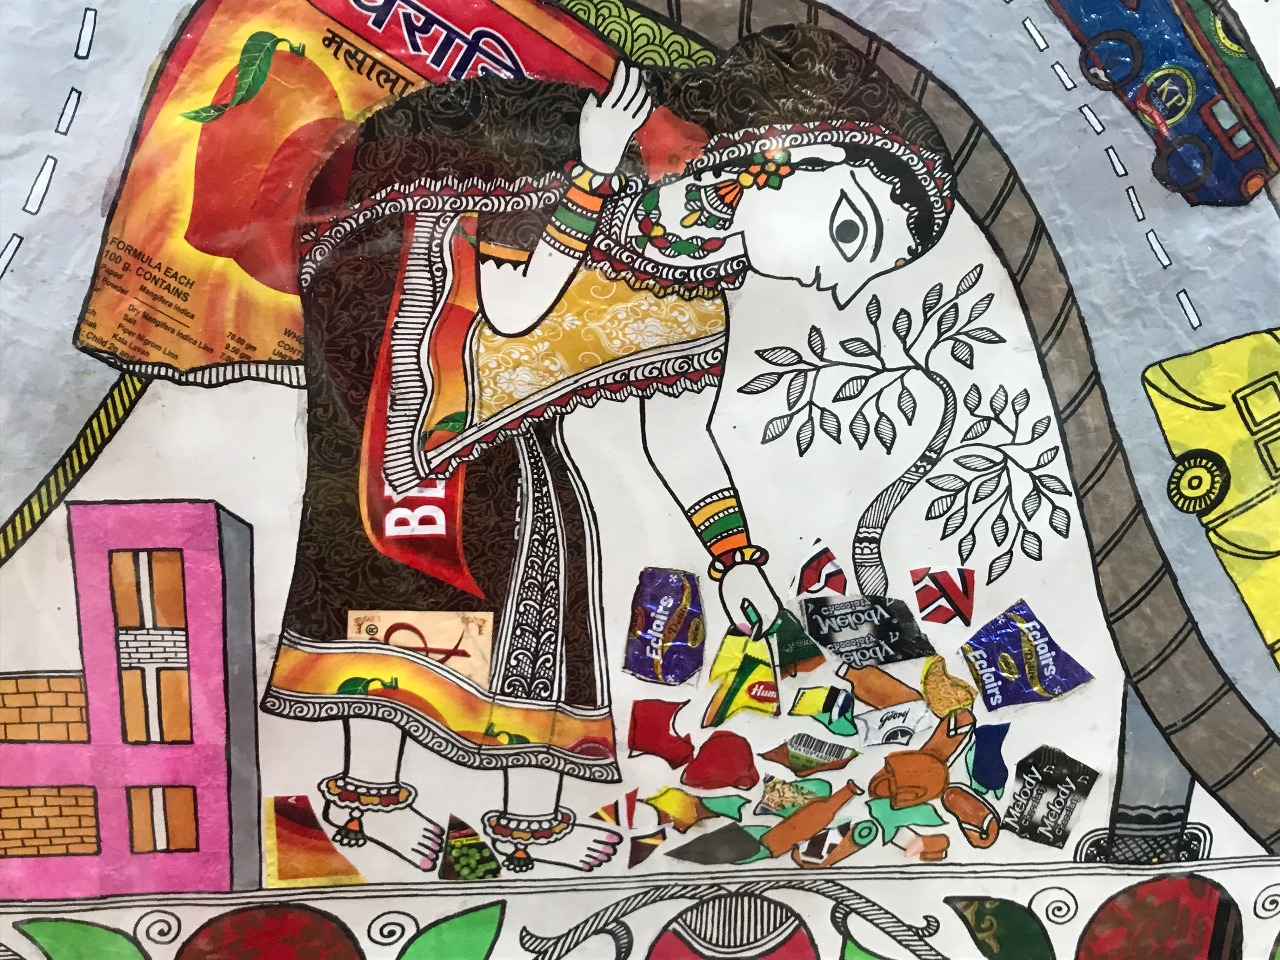 Pushpa Kumari has creatively incorporated plastic food and drink packaging wrappers and plastic shopping bags in her Madhubani paintings. Photo Credit: Navraj Bhatia